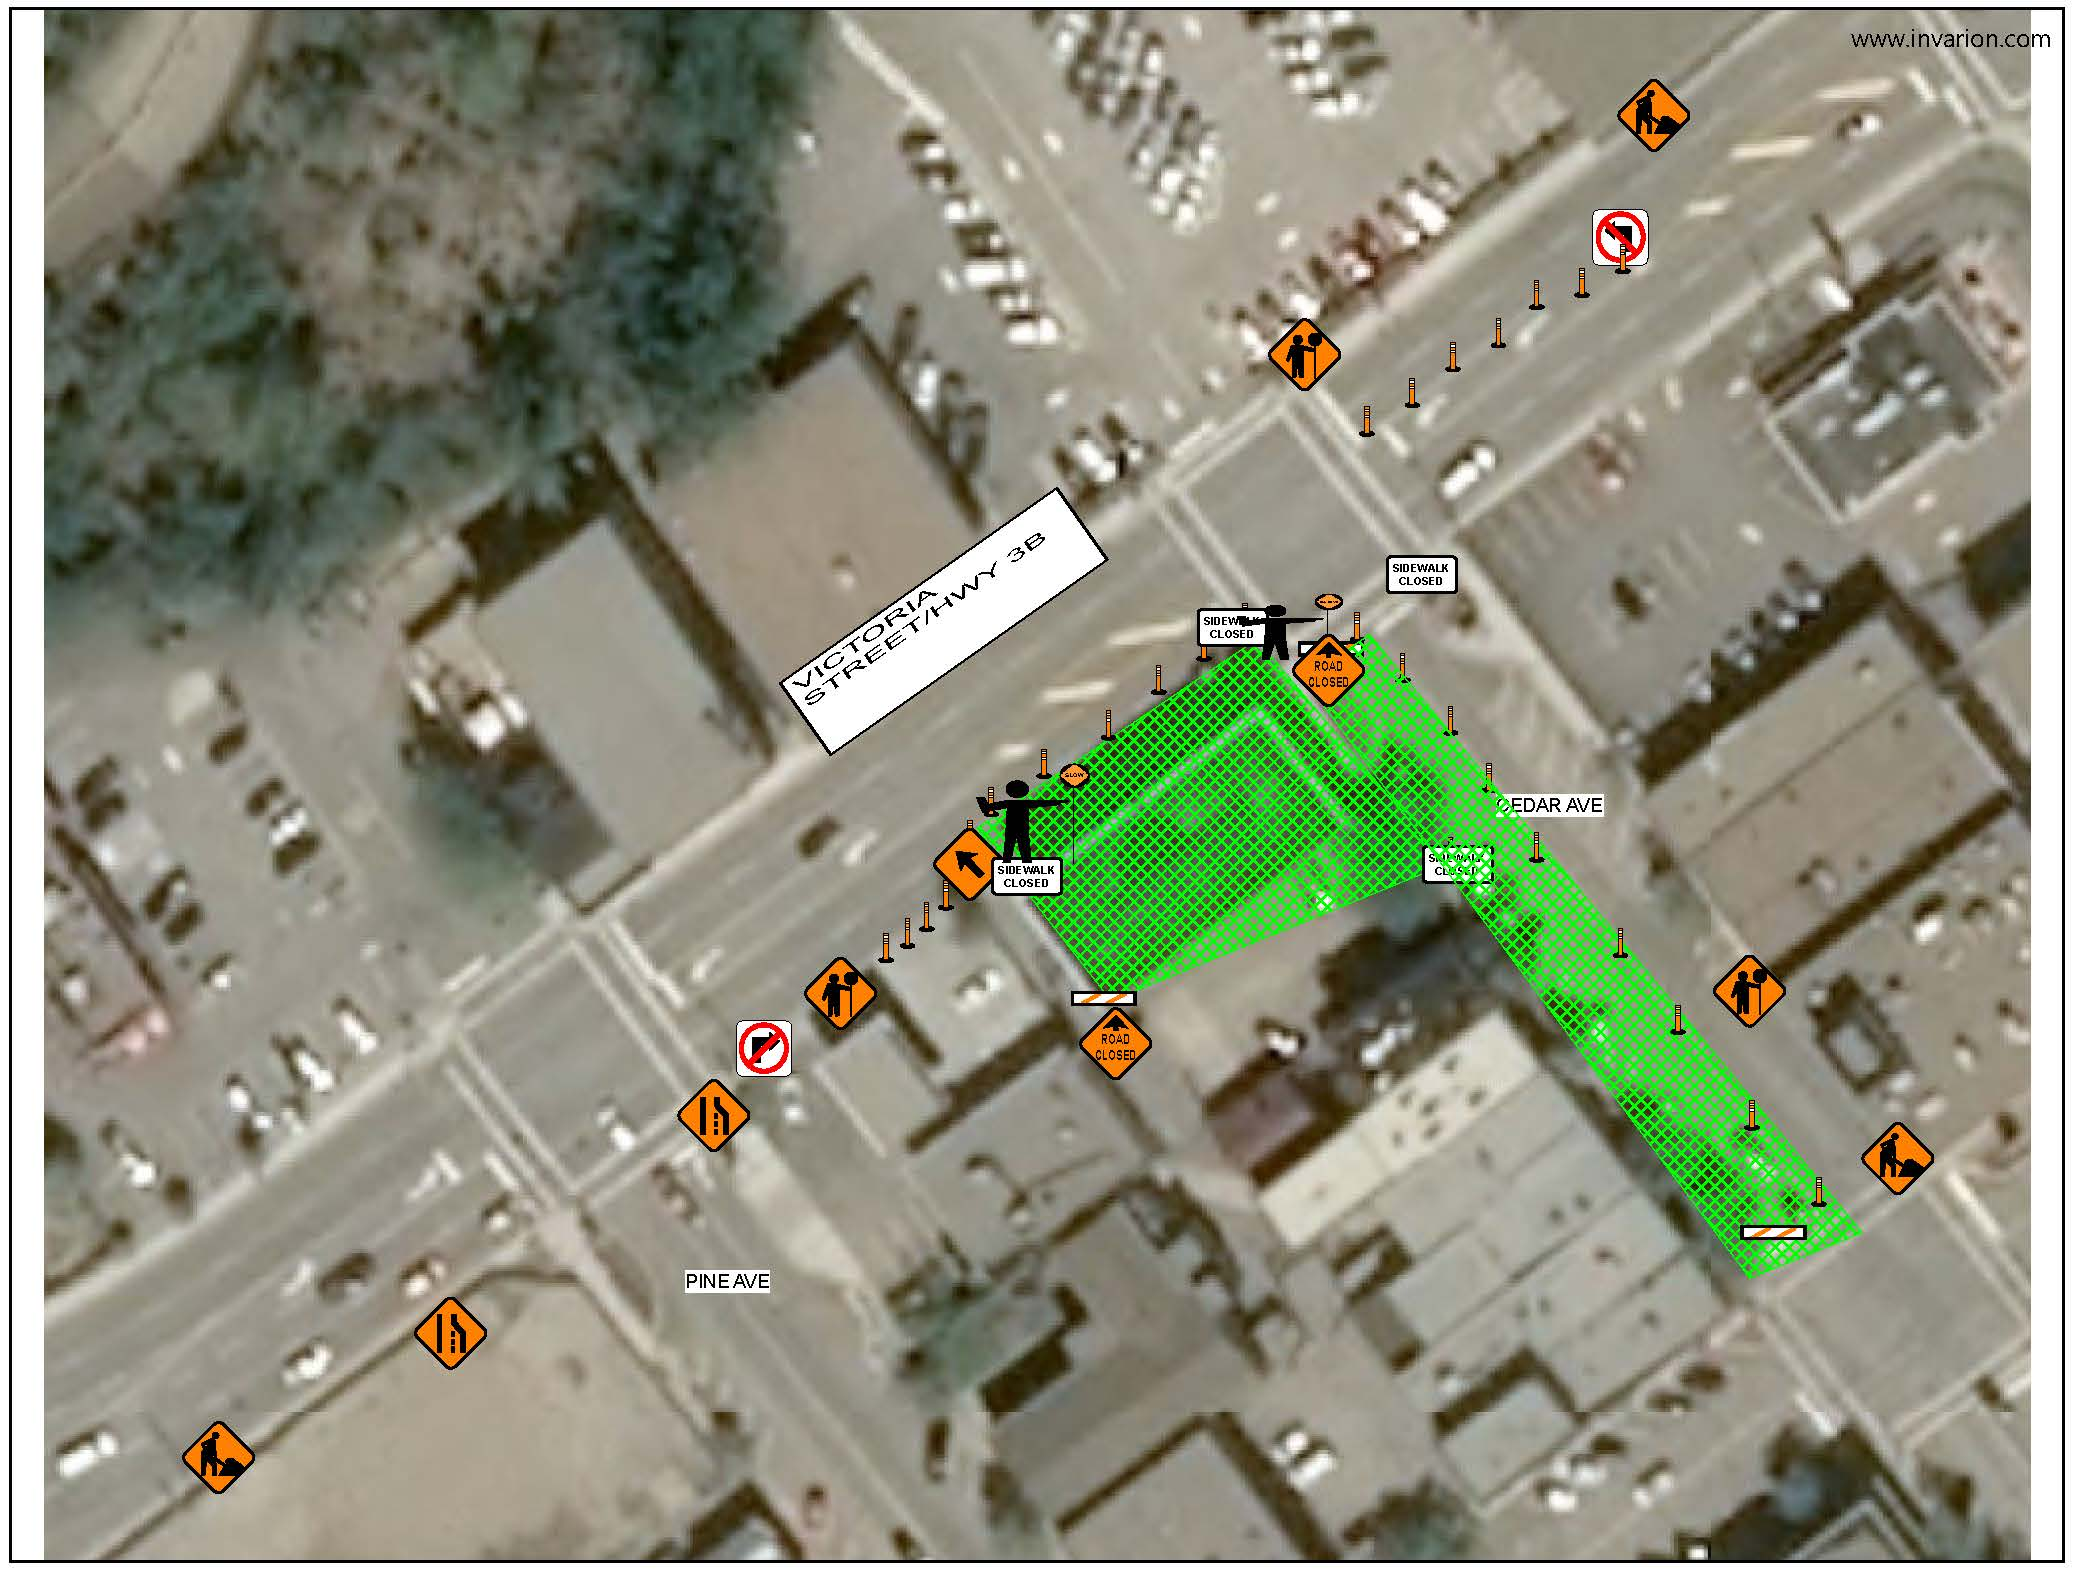 Map Traffic Management Plan for street closure